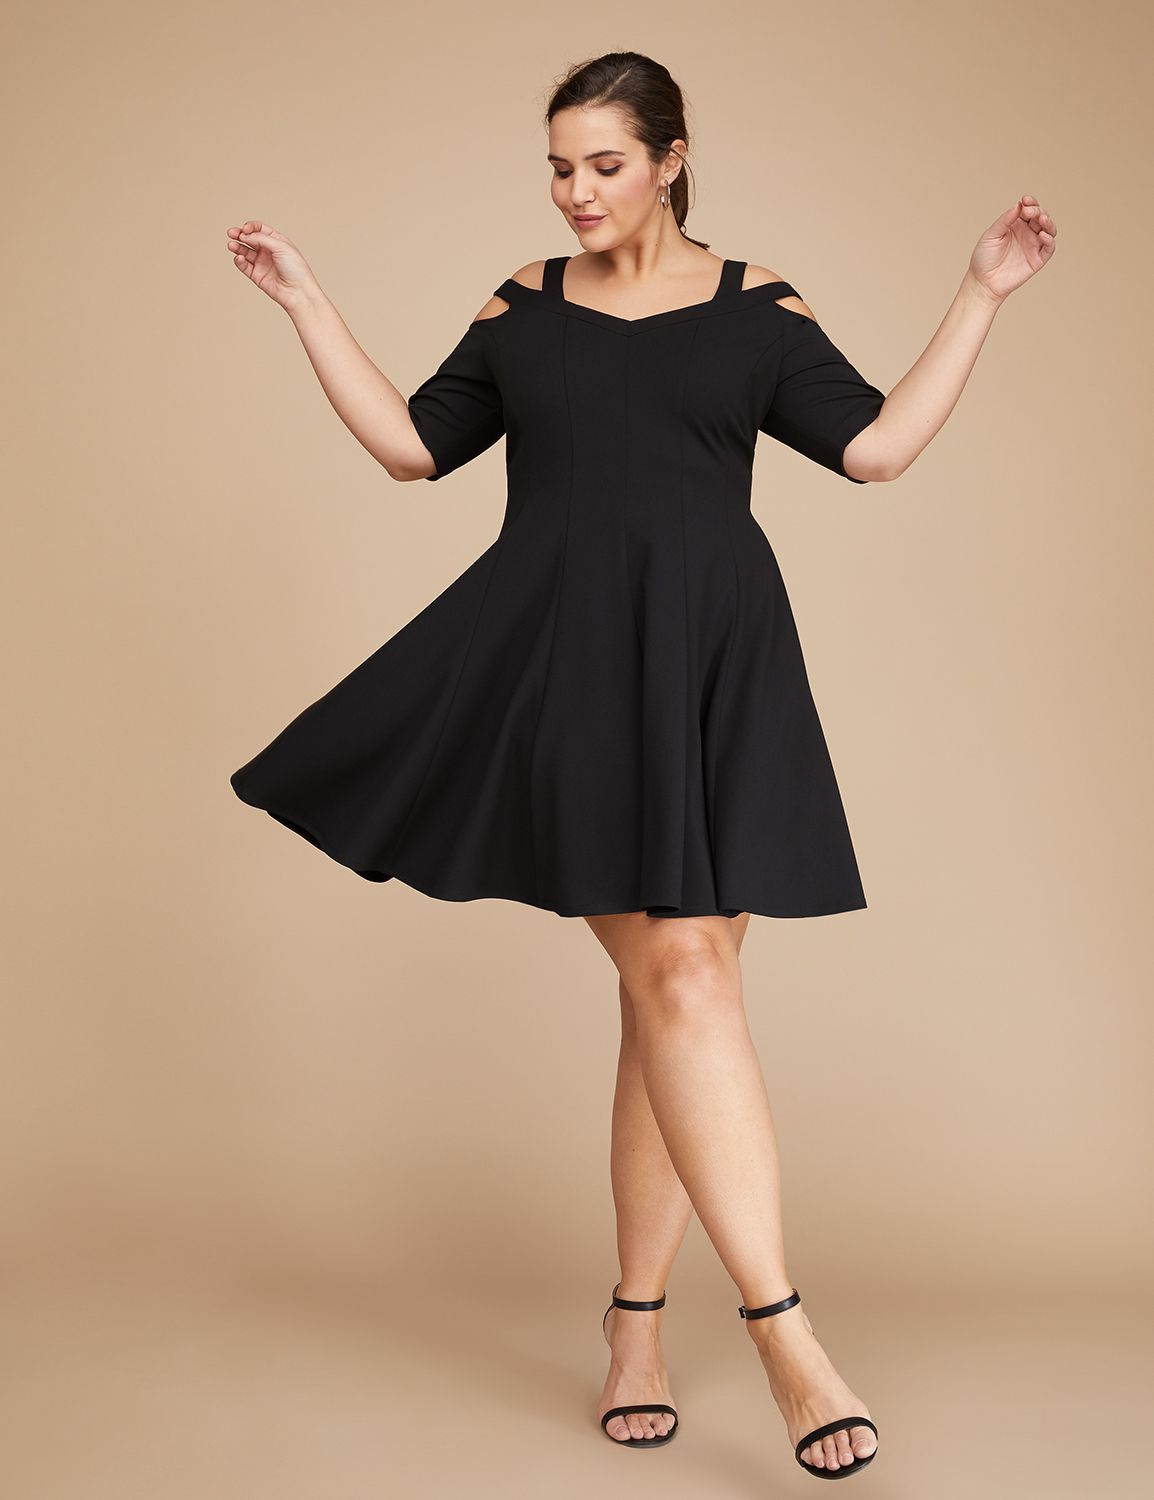 Fancy Plus Size Dresses | Special Occasion, Cocktail & Party Dresses ...